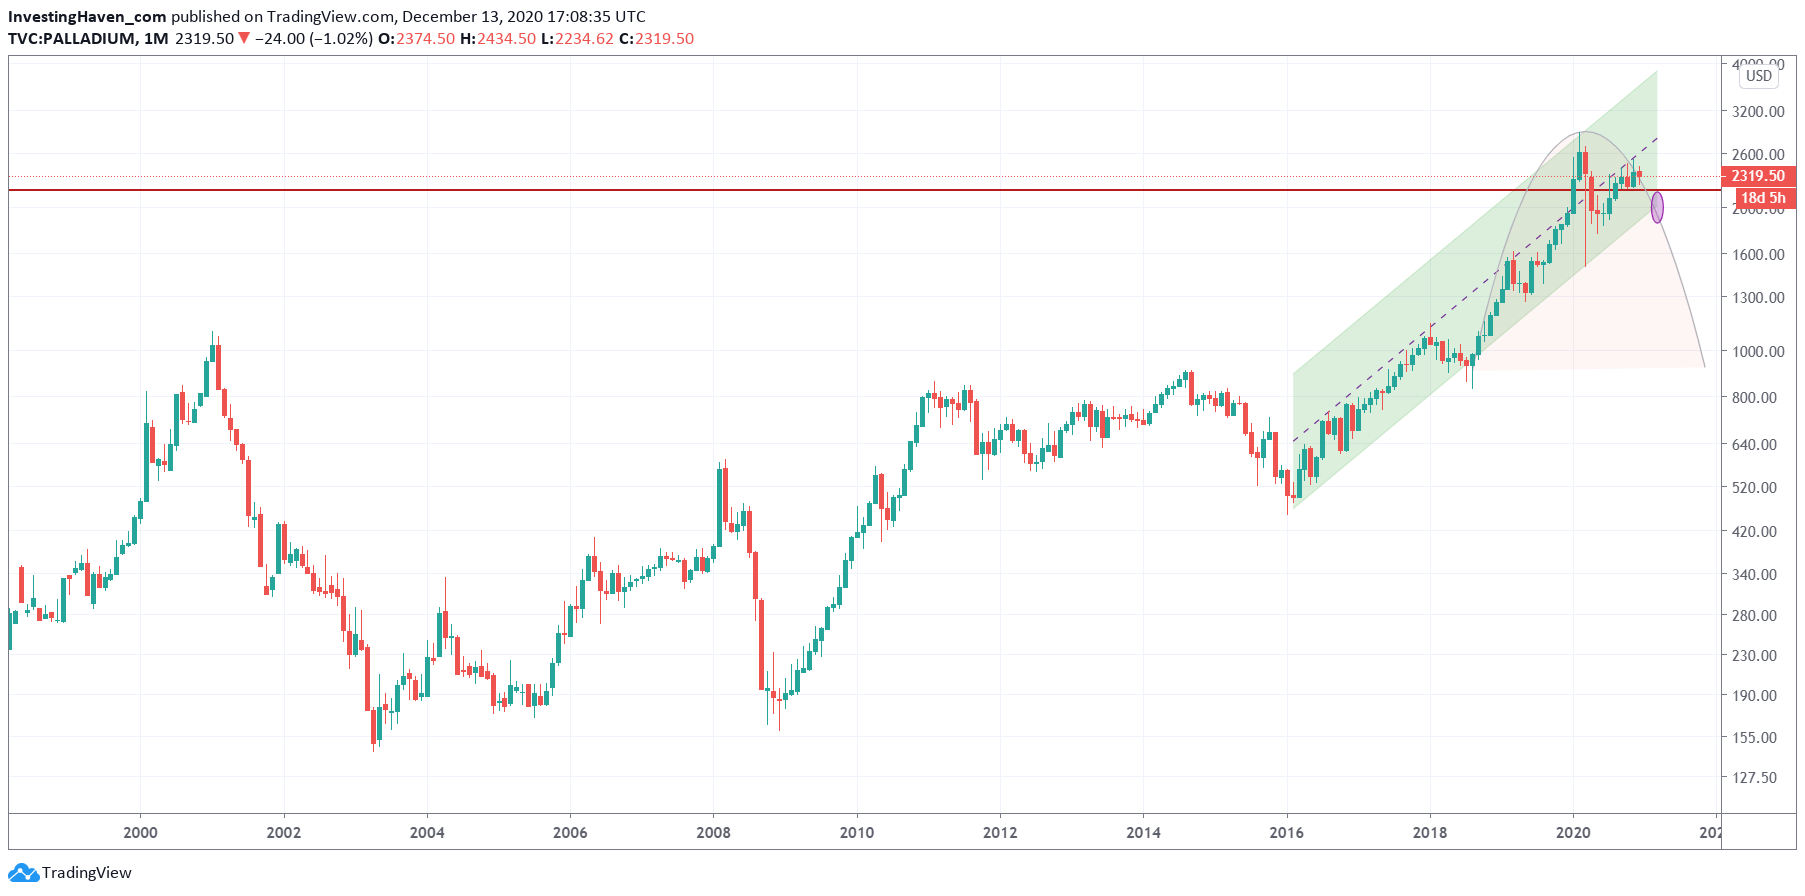 palladium price forecast 2021